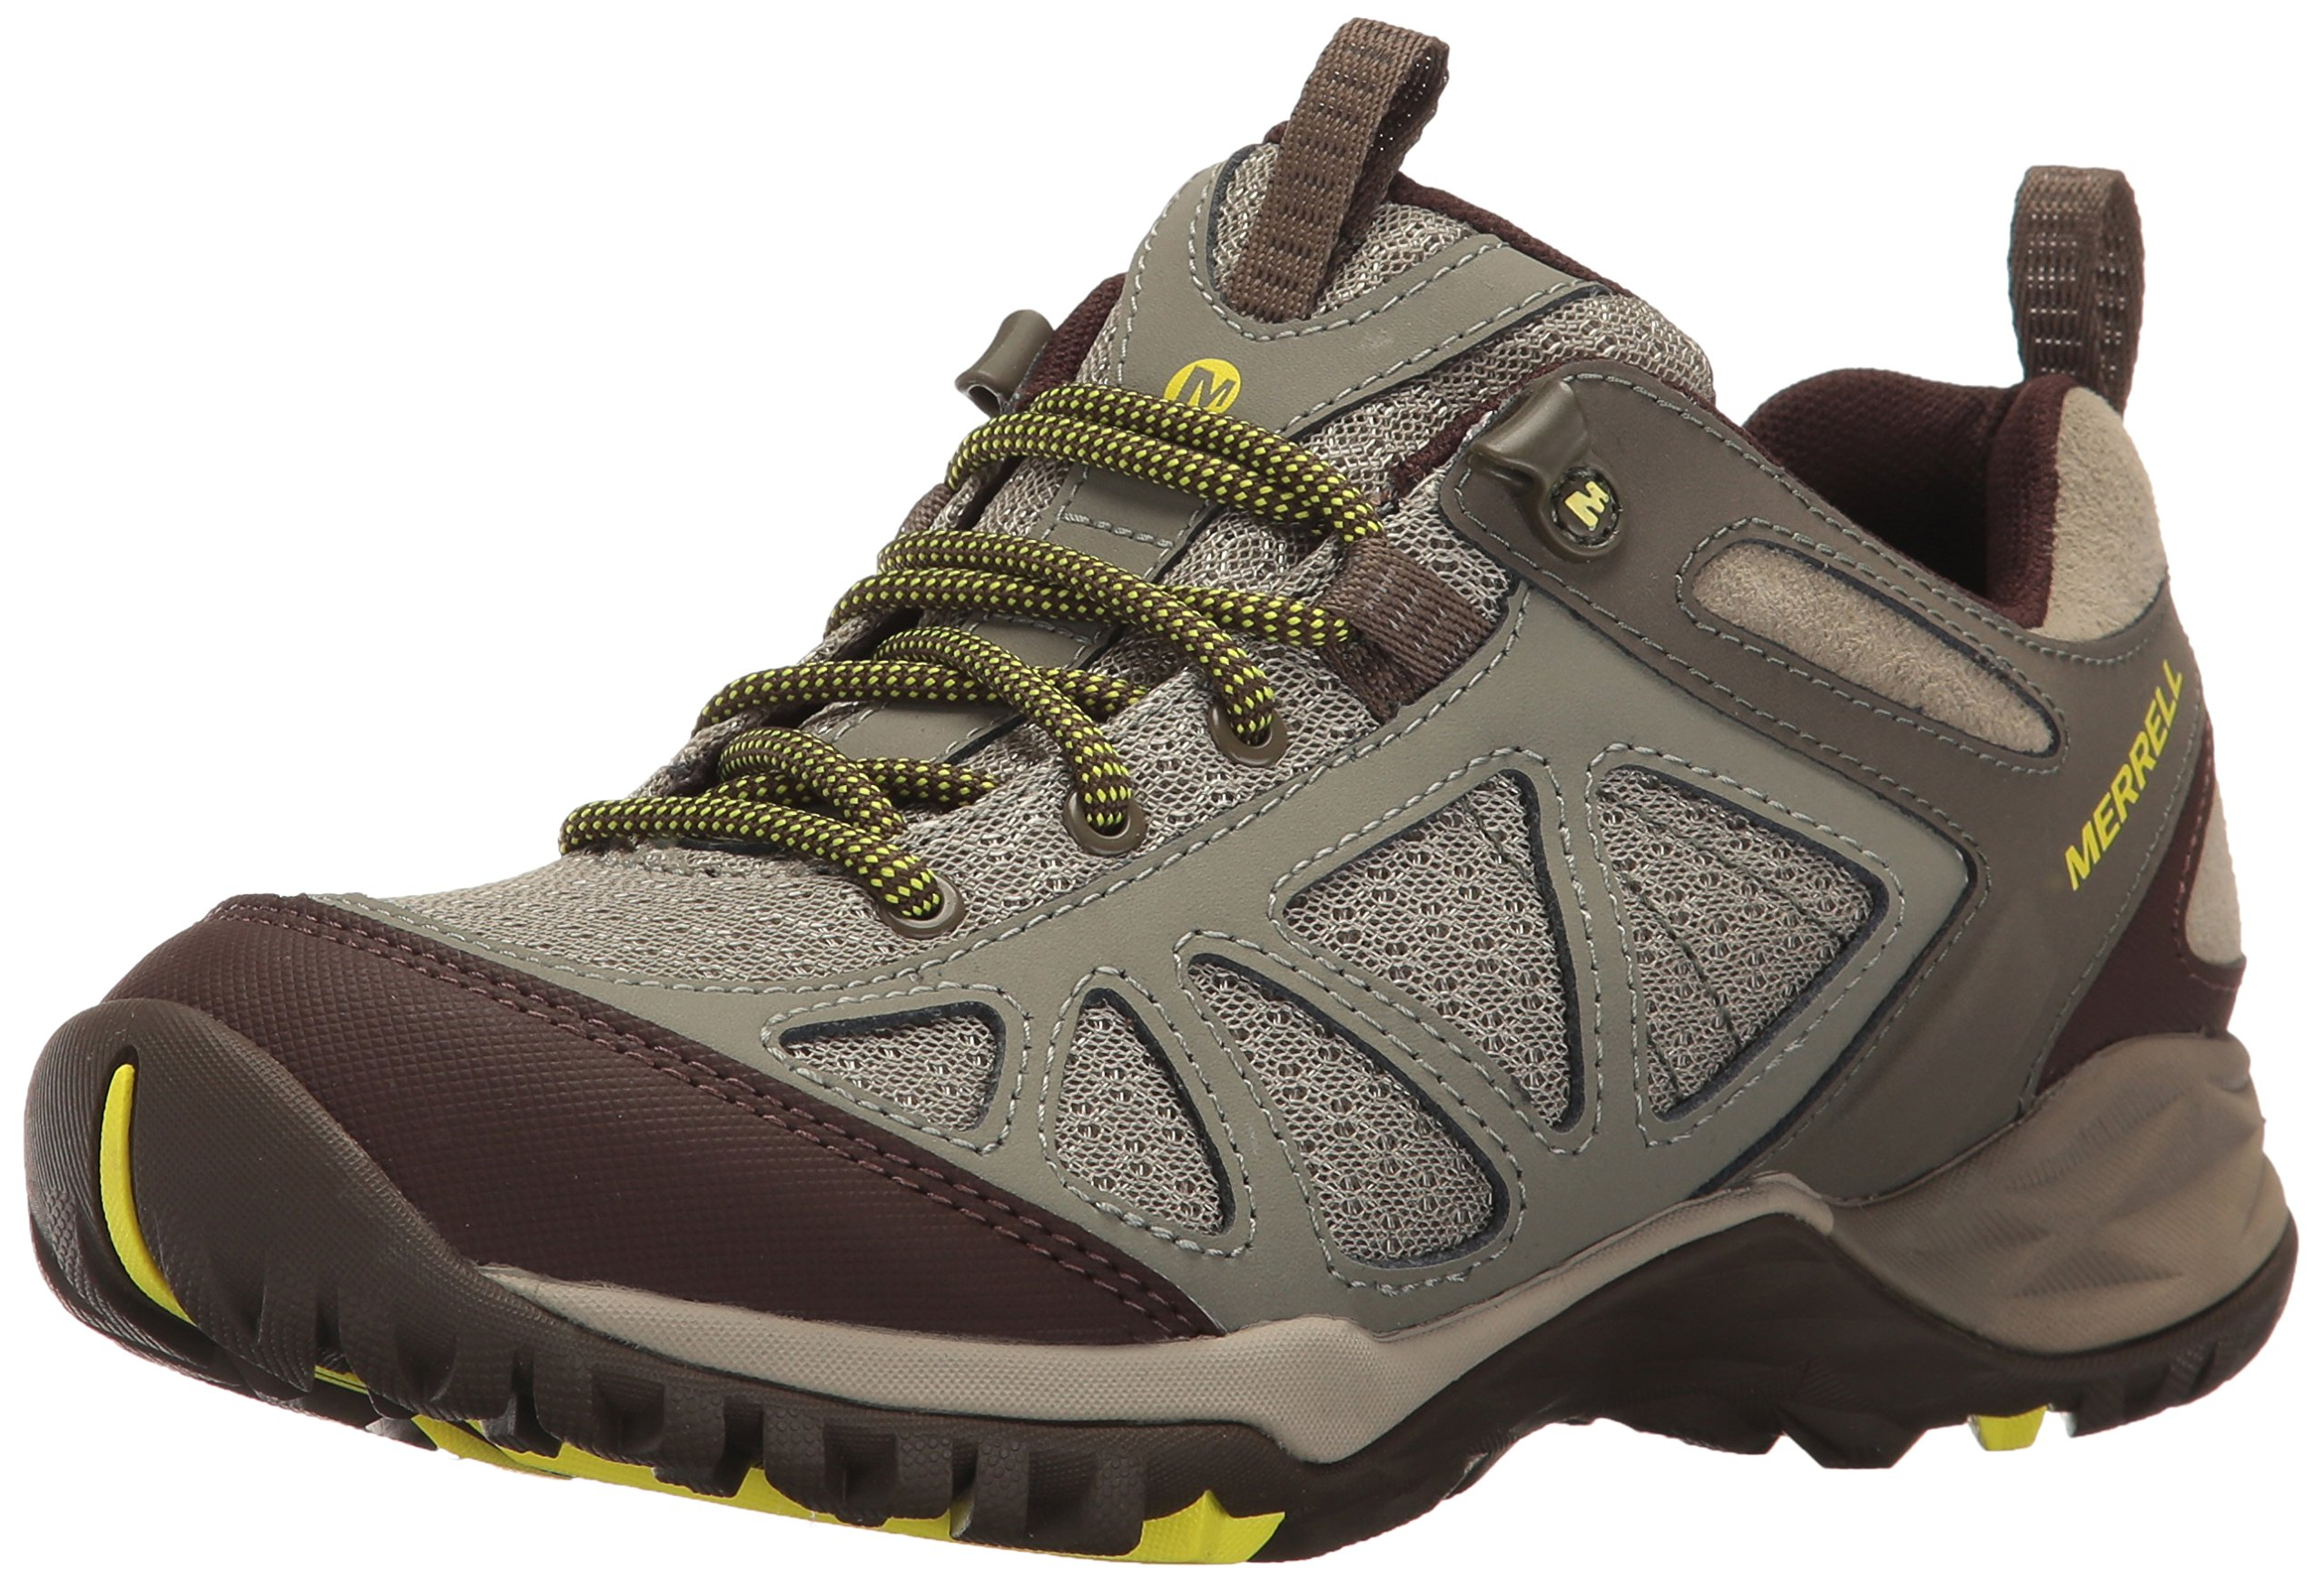 Merrell Women's Siren Sport Q2 Hiking Shoe, Dusty Olive, 8 W US